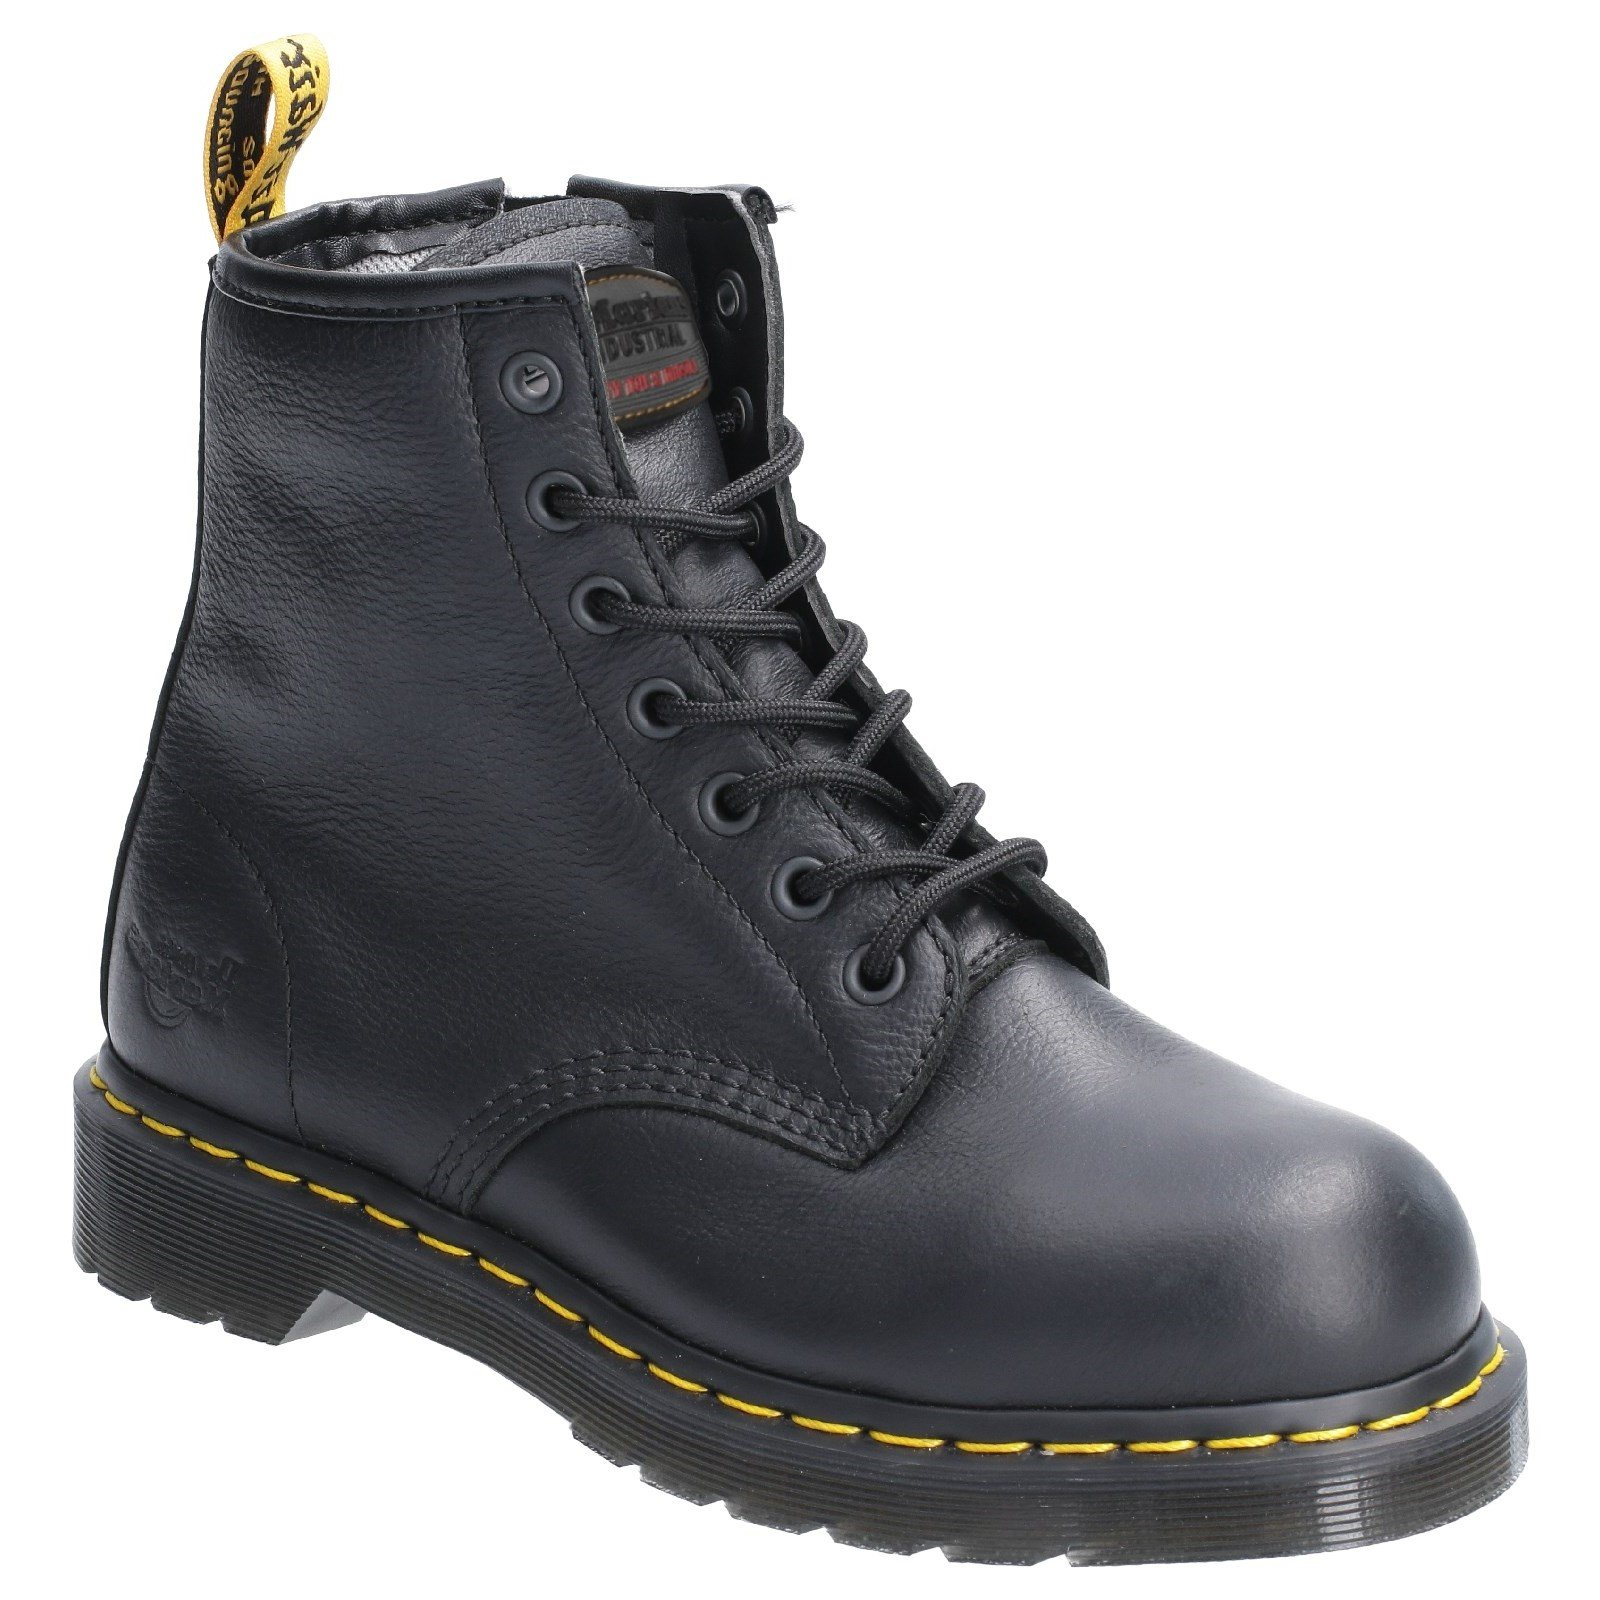 Dr Martens Women's Maple Zip Lace Up Safety Boot Various Colours 29515 - Black 8